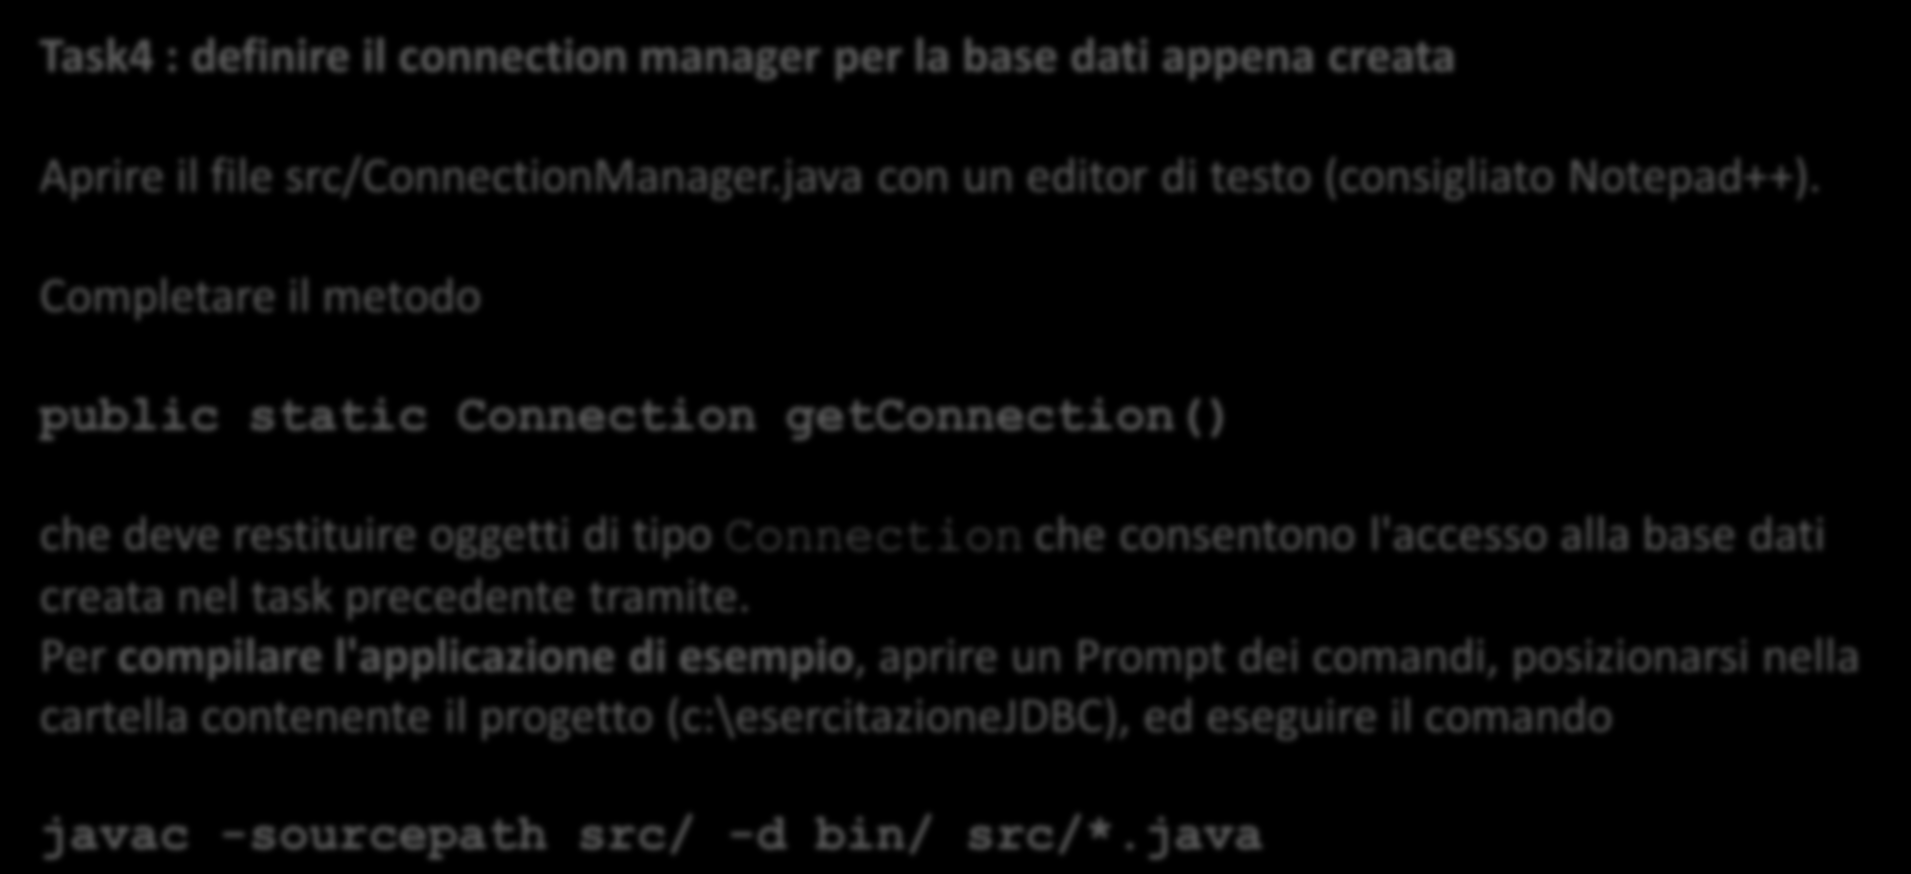 Task4 : definire il connection manager per la base dati appena creata Aprire il file src/connectionmanager.java con un editor di testo (consigliato Notepad++).